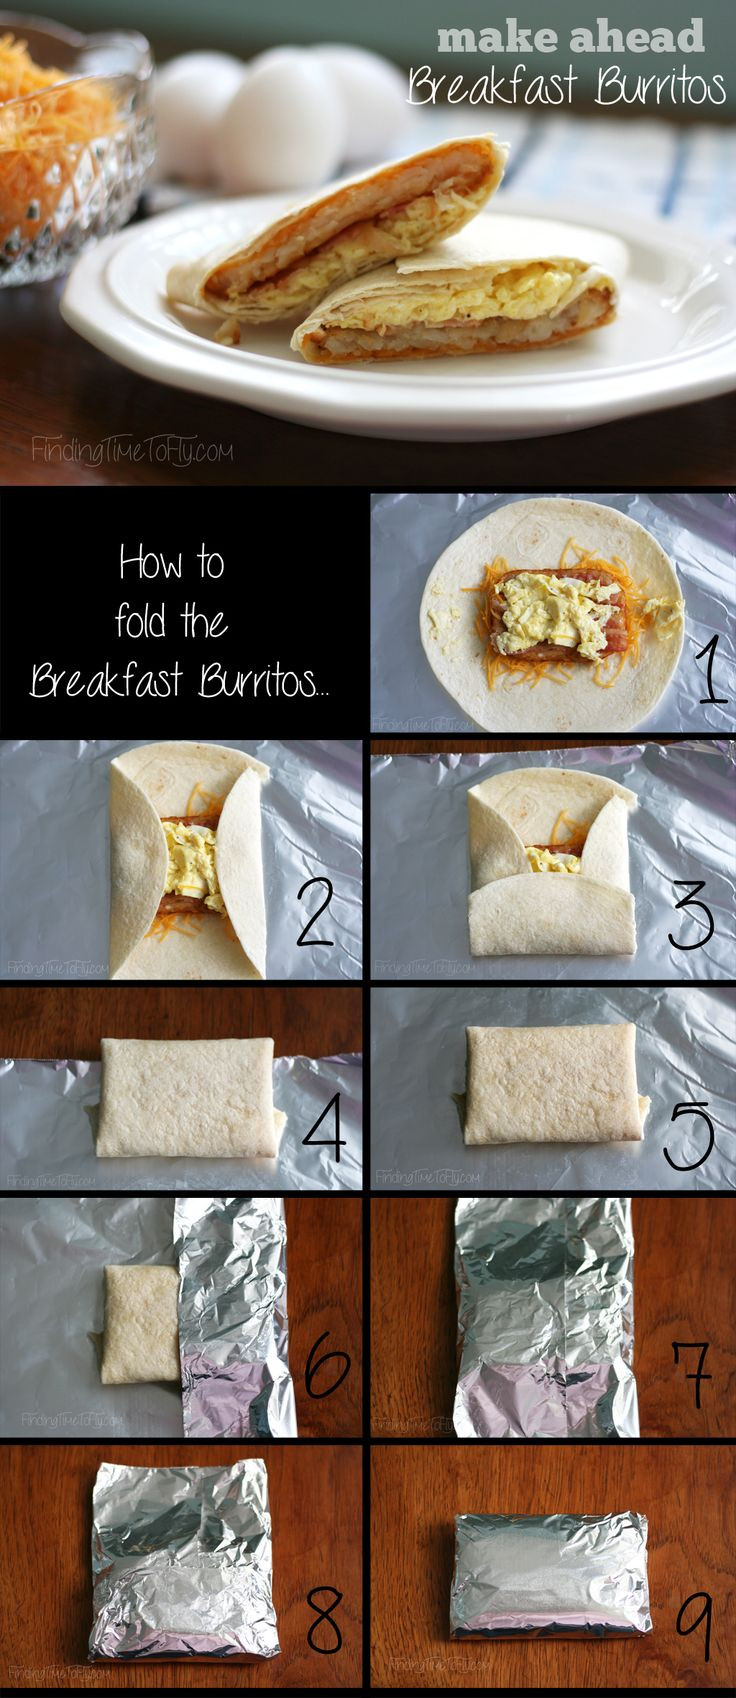 Make Ahead Breakfast Burritos For Camping  15 best Camping Food and Hacks images on Pinterest